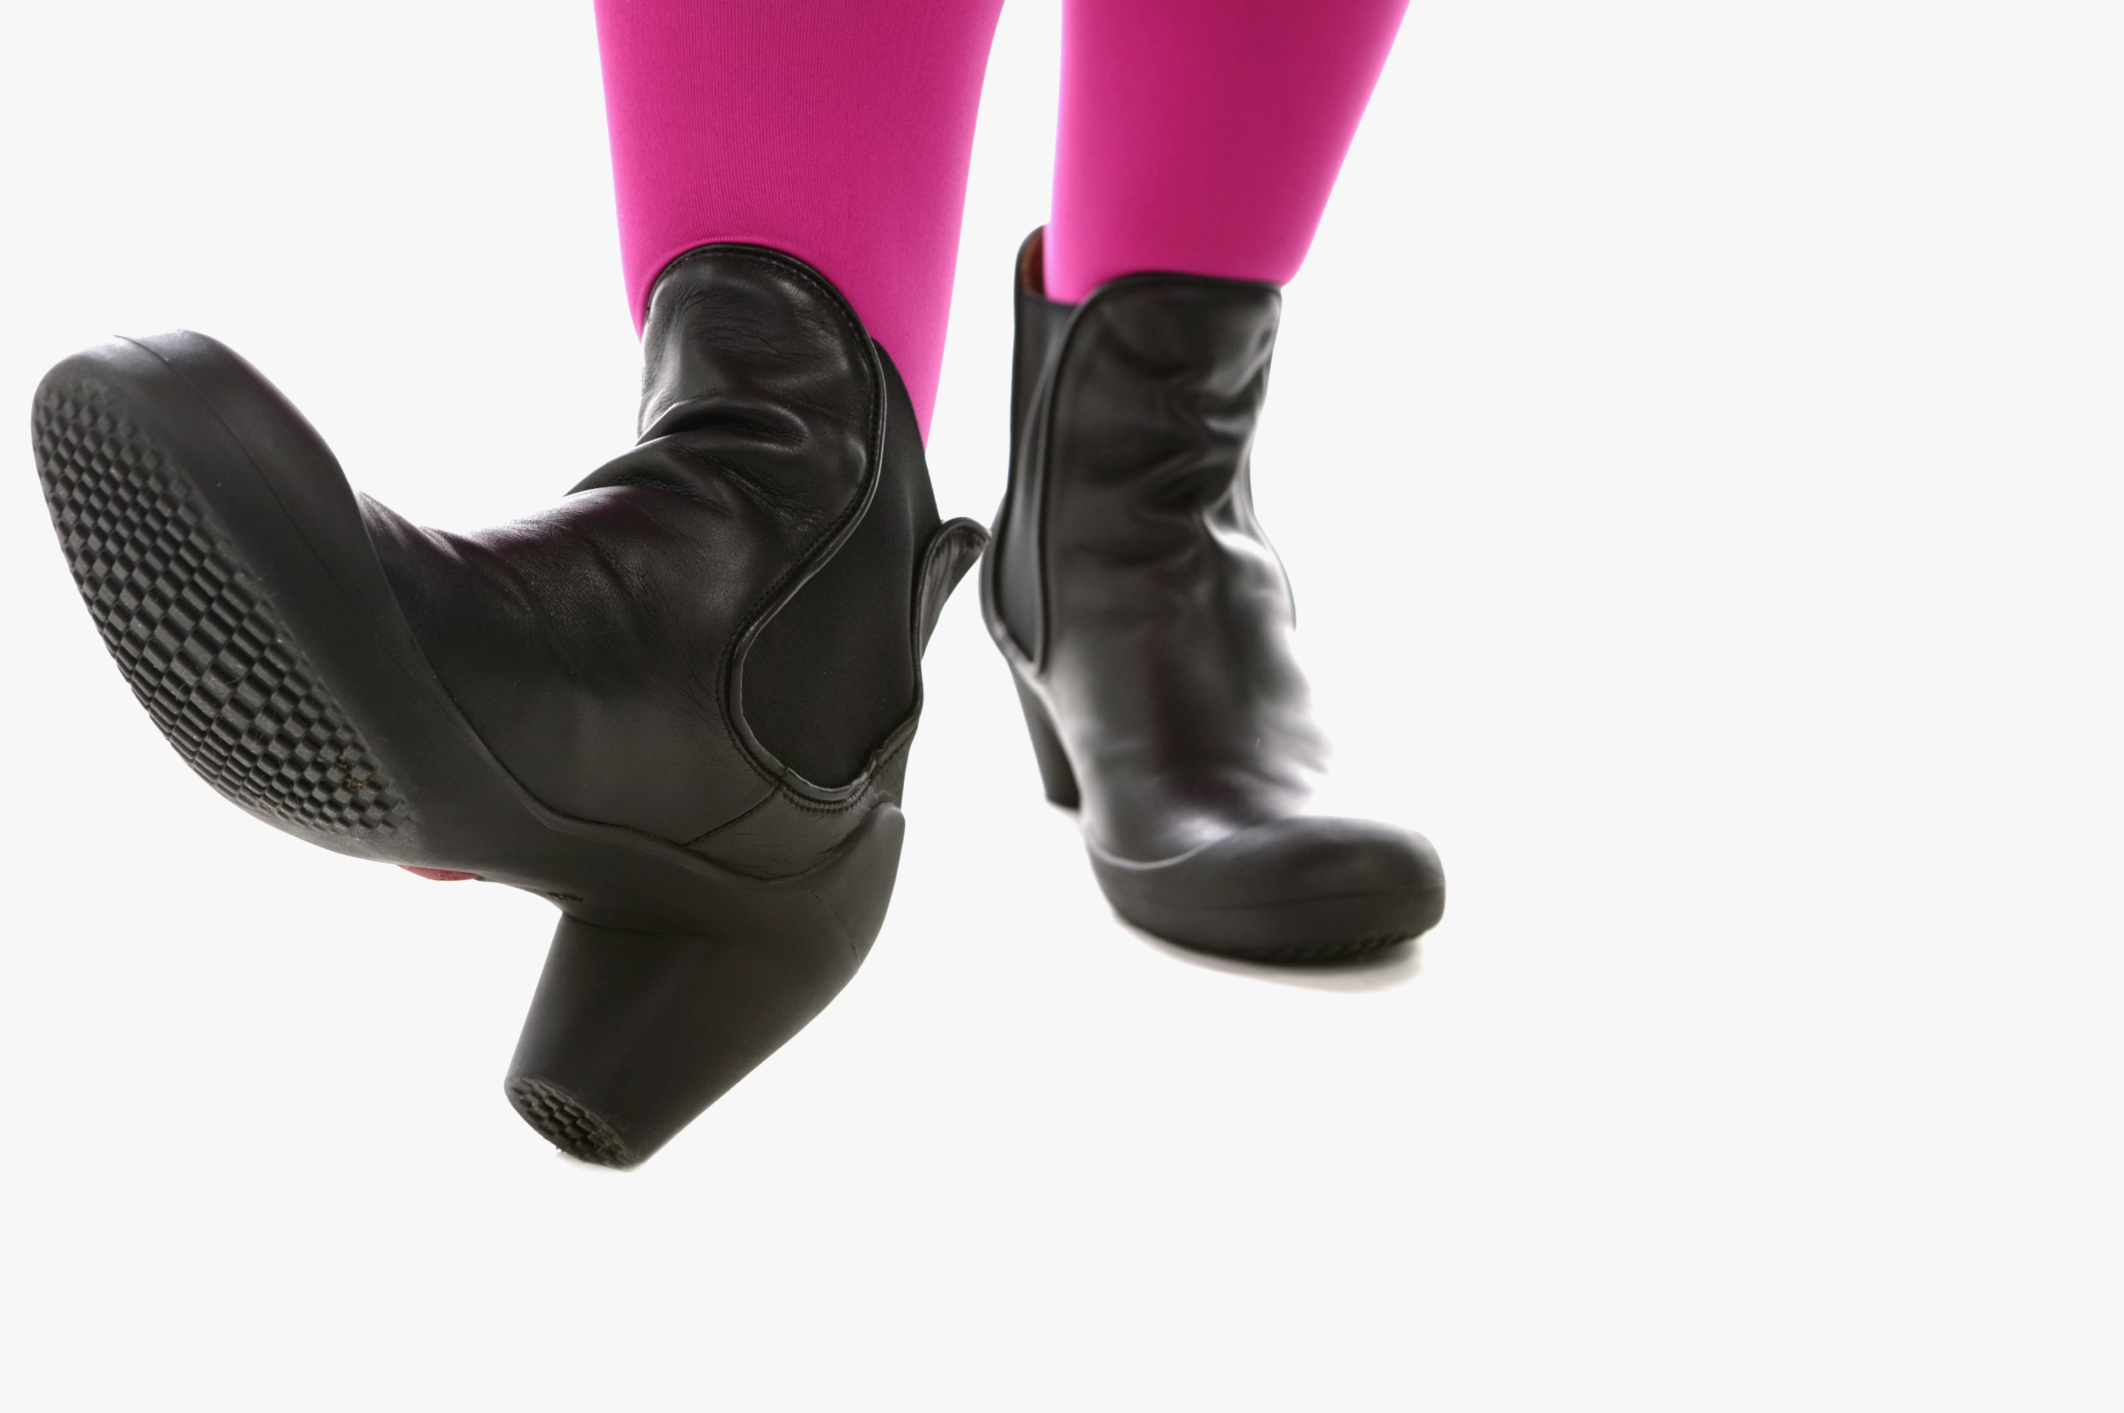 e7306f7438c How to Stop Uggs From Turning Feet Black | eHow